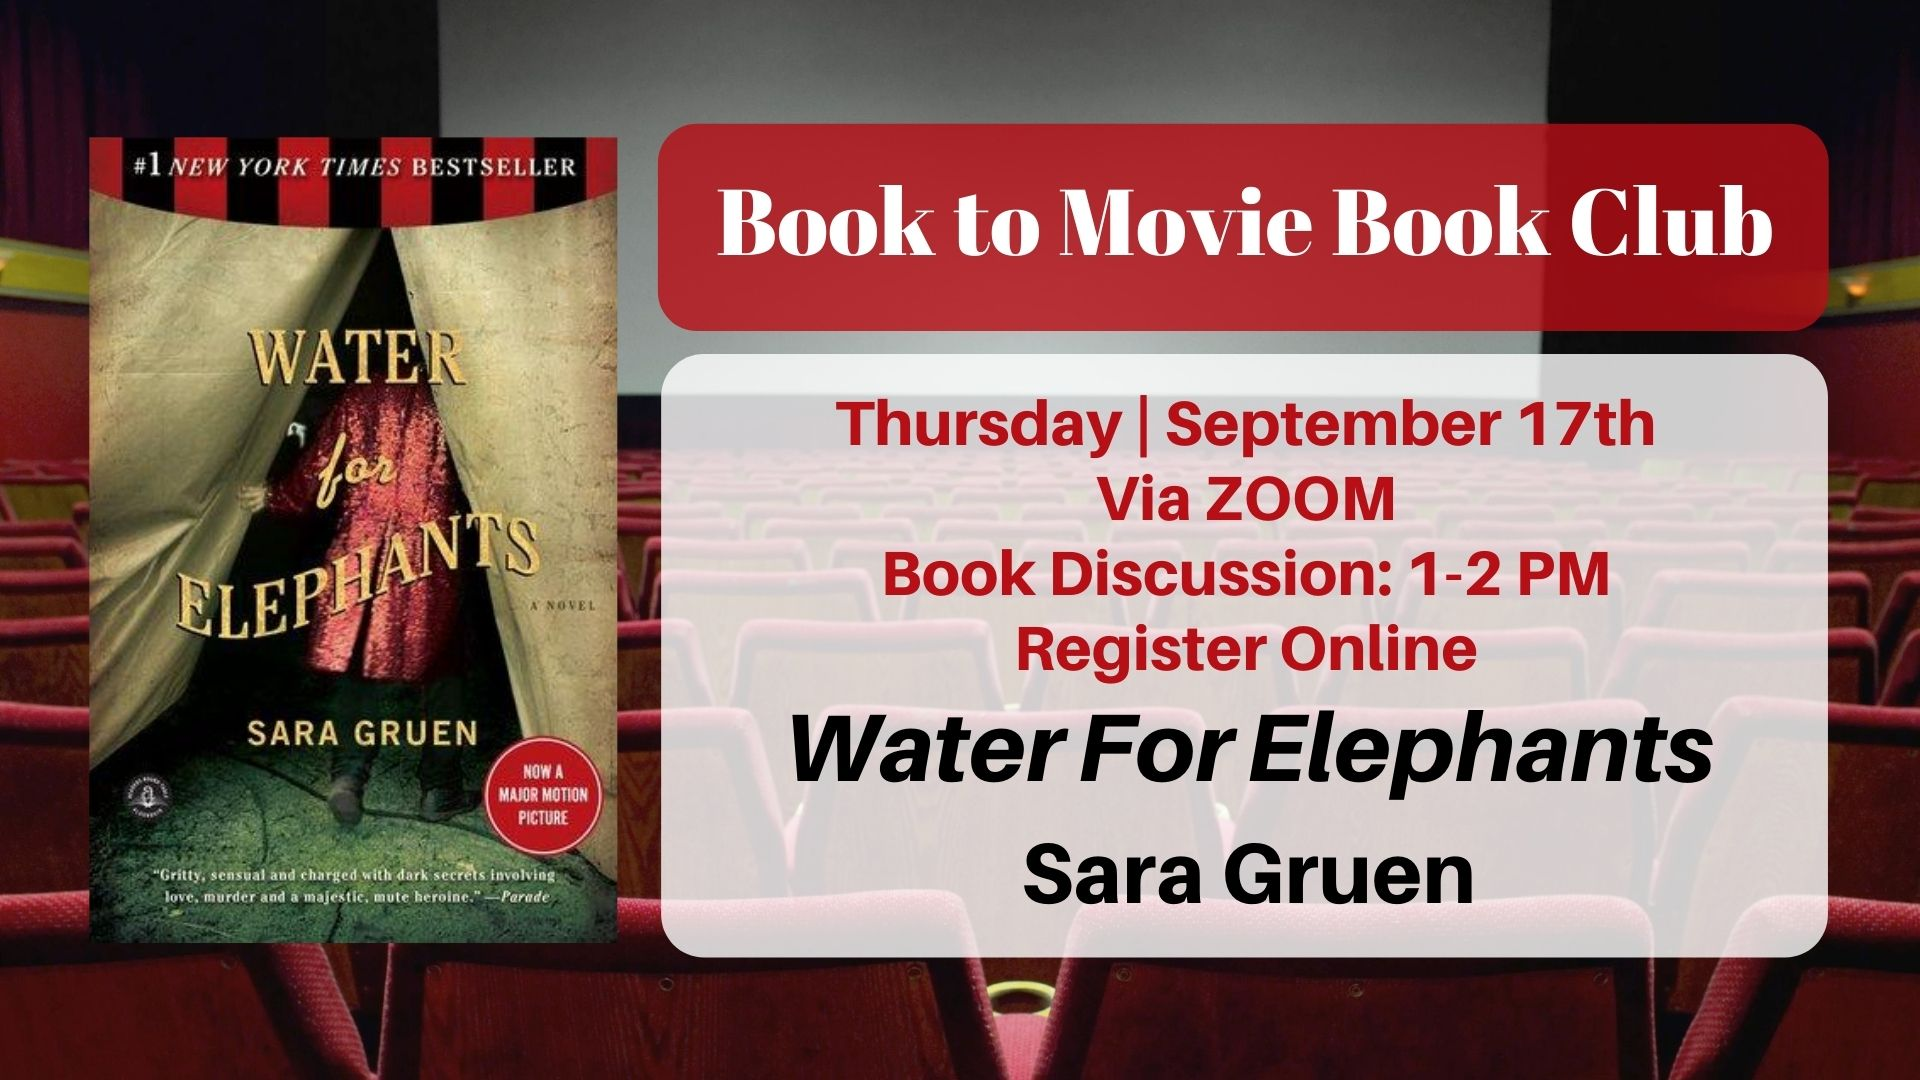 Book to Movie Book Club: Water for Elephants by Sara Gruen